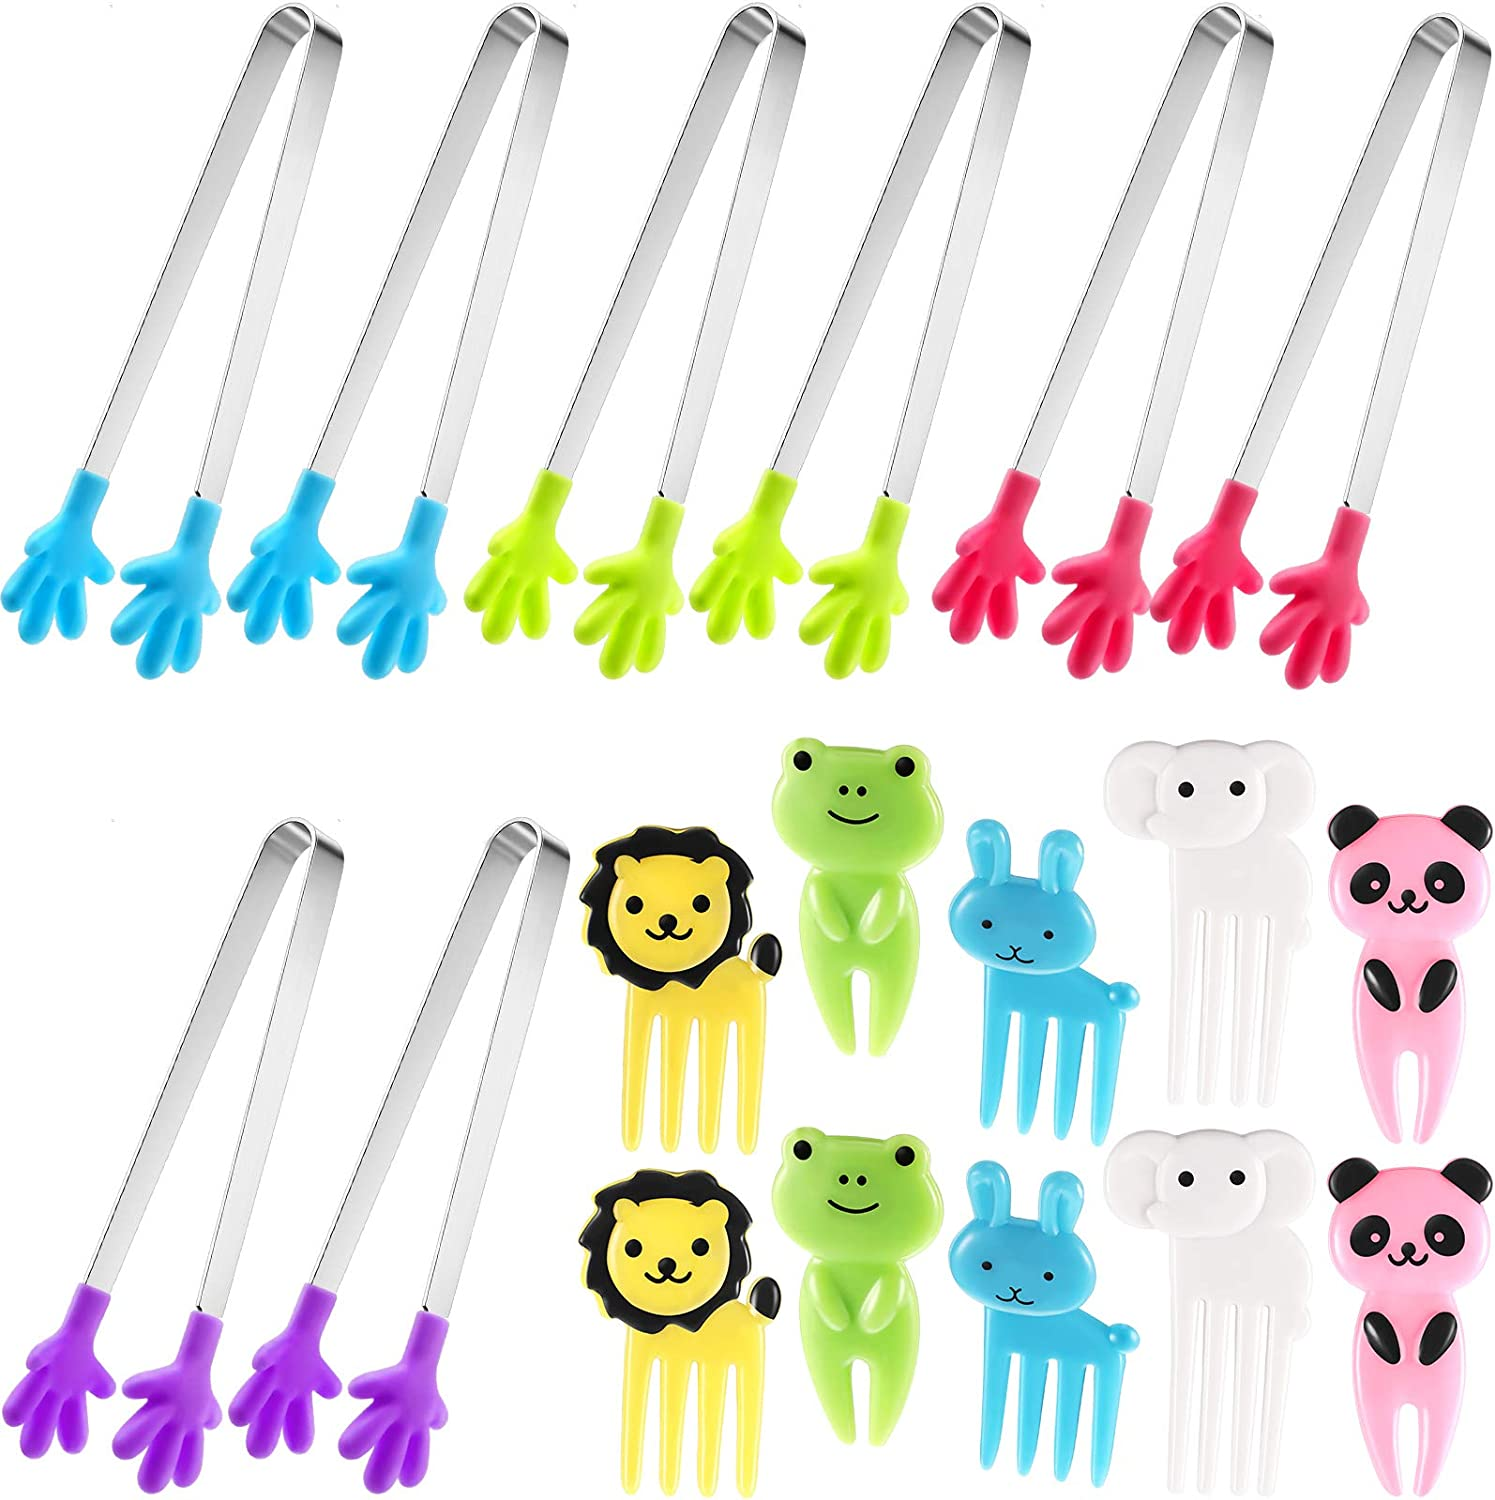 8 Pieces Small Serving Tongs Silicone Small Tongs Hand Shape Food Tongs Appetizers Tongs with 10 Pieces Cartoon Toothpick Animals Food Picks and Forks for Kids Parties Serving Food